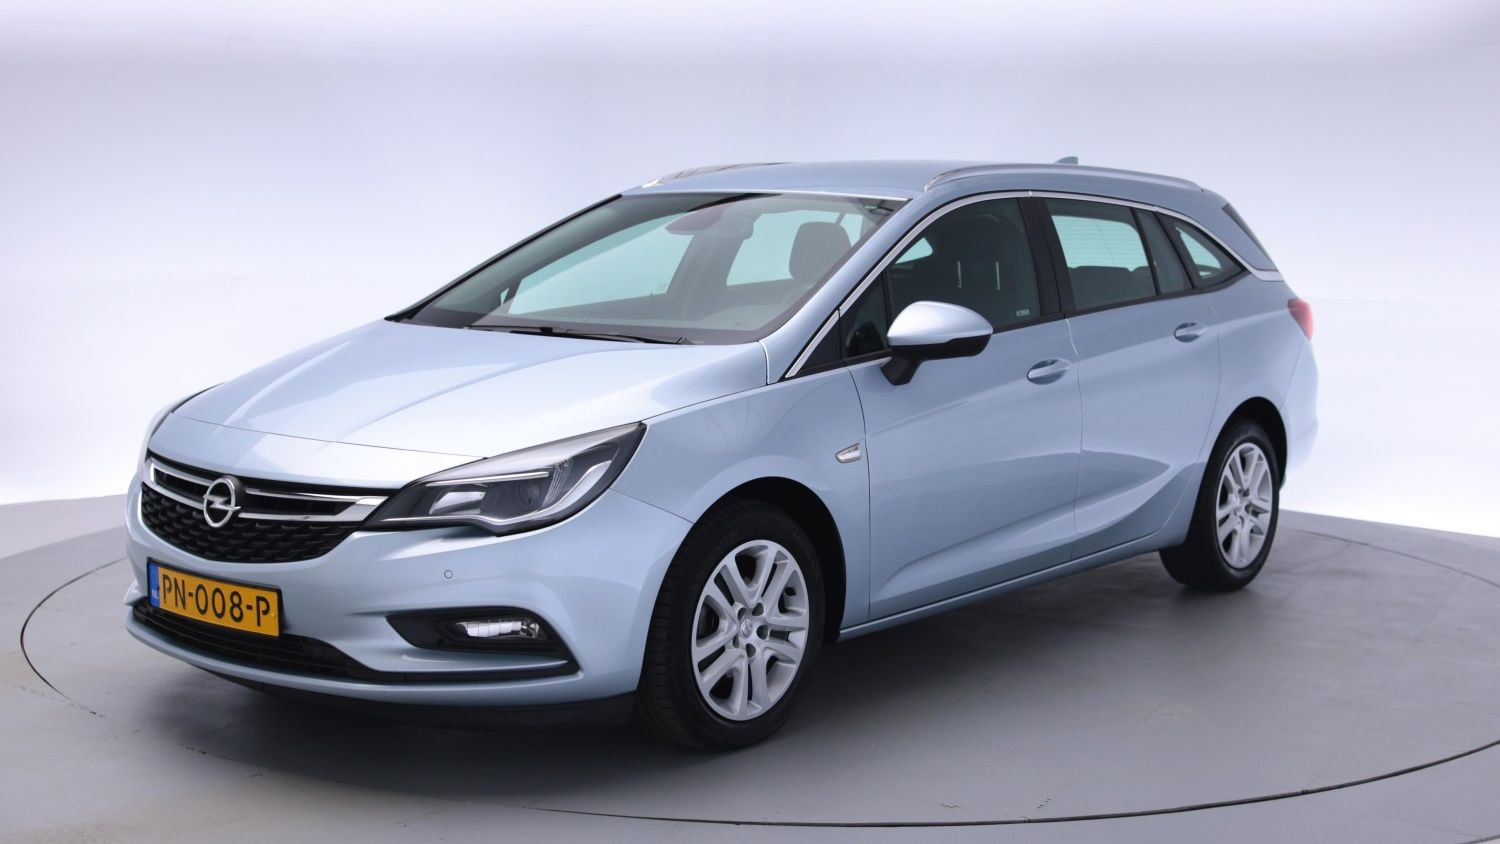 Opel Astra Station 2017 PN-008-P 1